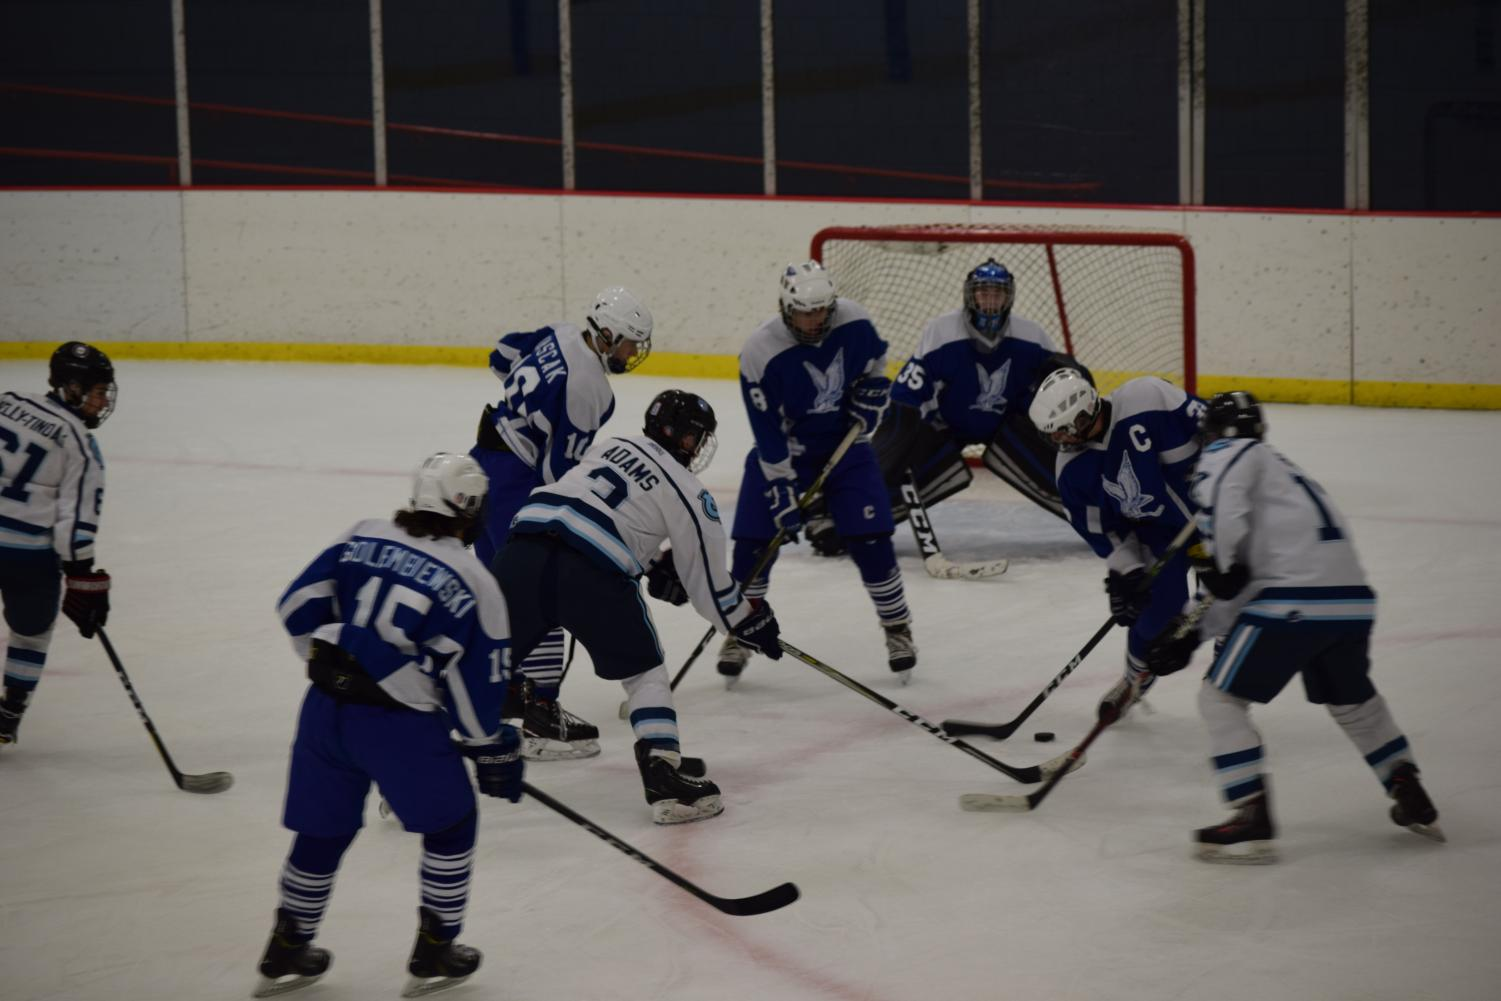 Junior Riley Adams faces three players from Connellsville on Dec. 14 as he makes his way towards the goal with the puck.